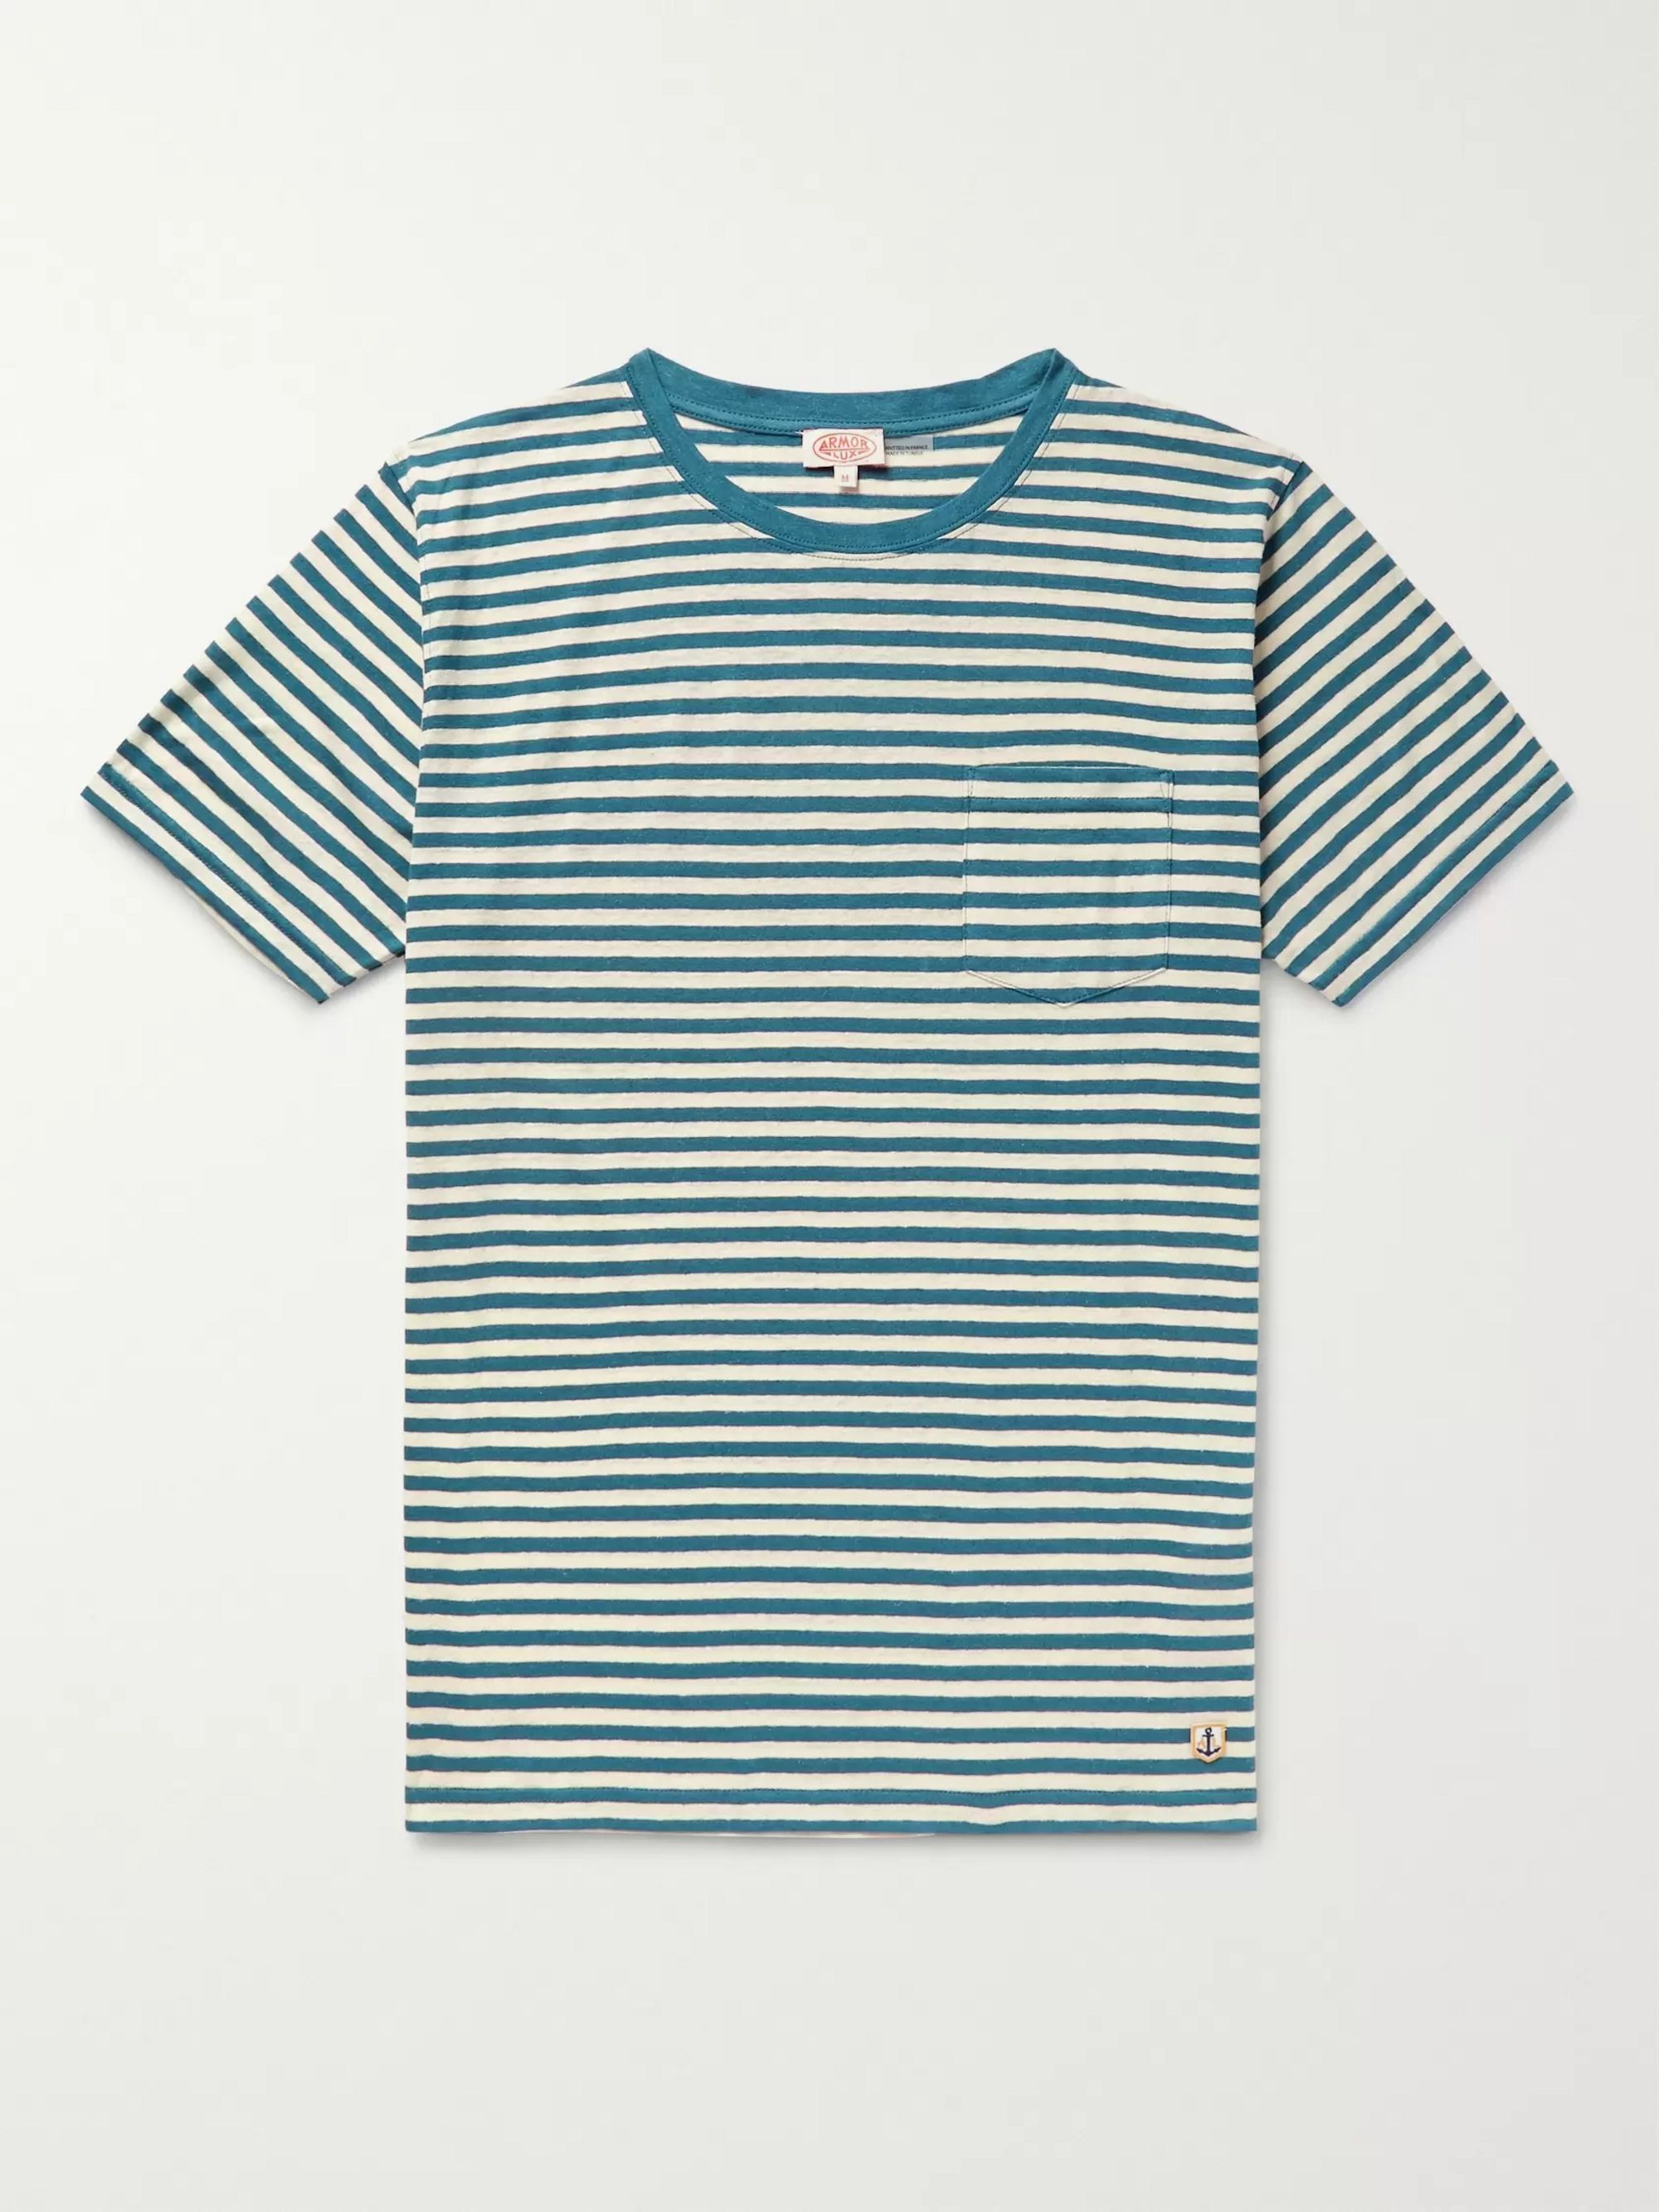 Armor Lux Striped Cotton and Linen-Blend Jersey T-Shirt